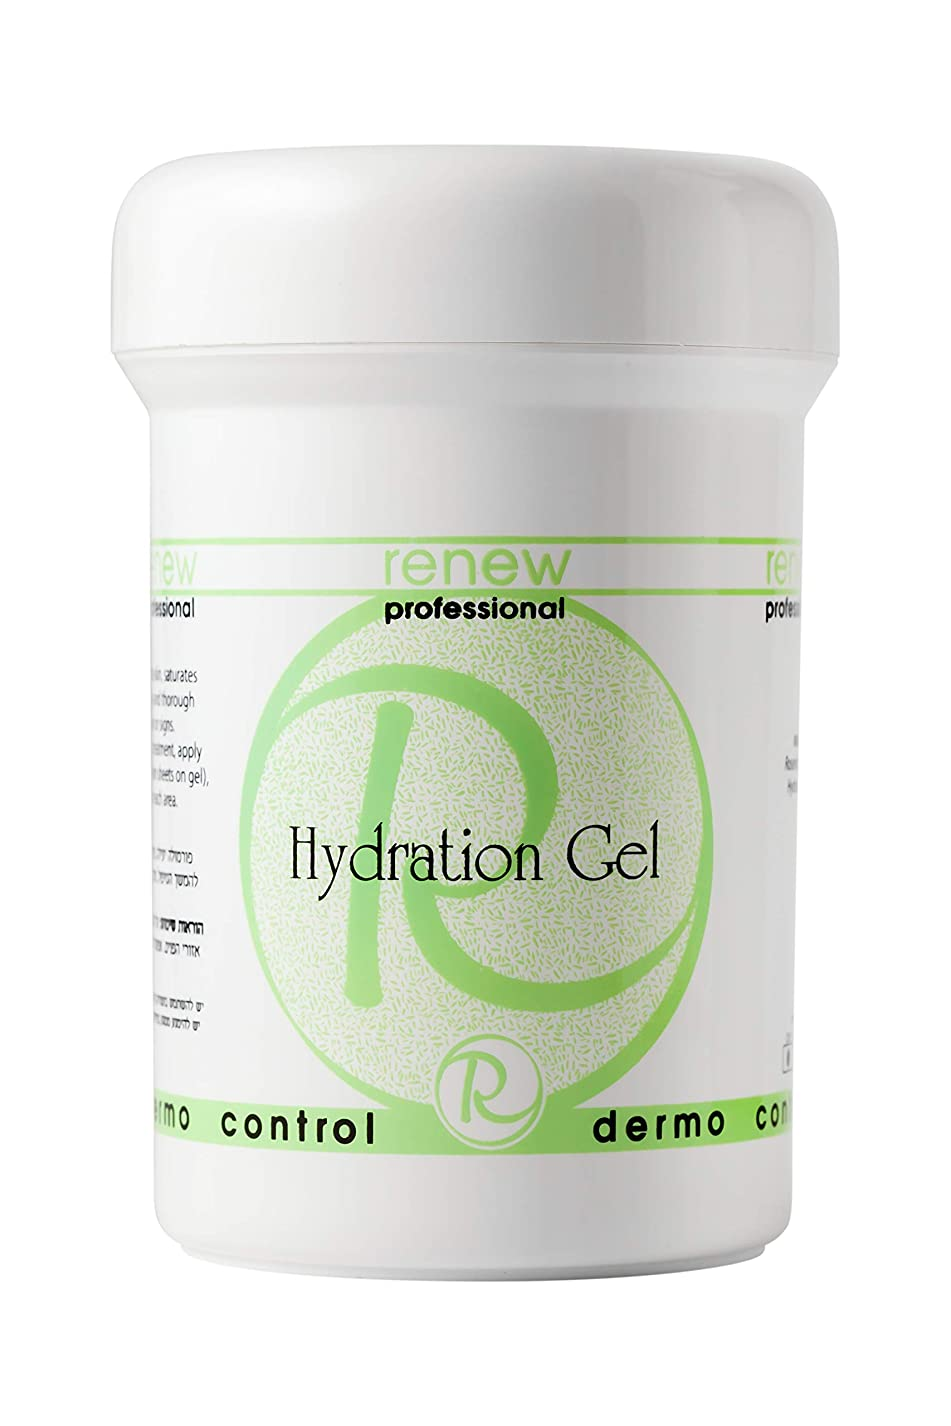 アナロジー増強する猟犬Renew Dermo Control Hydration Gel 250ml